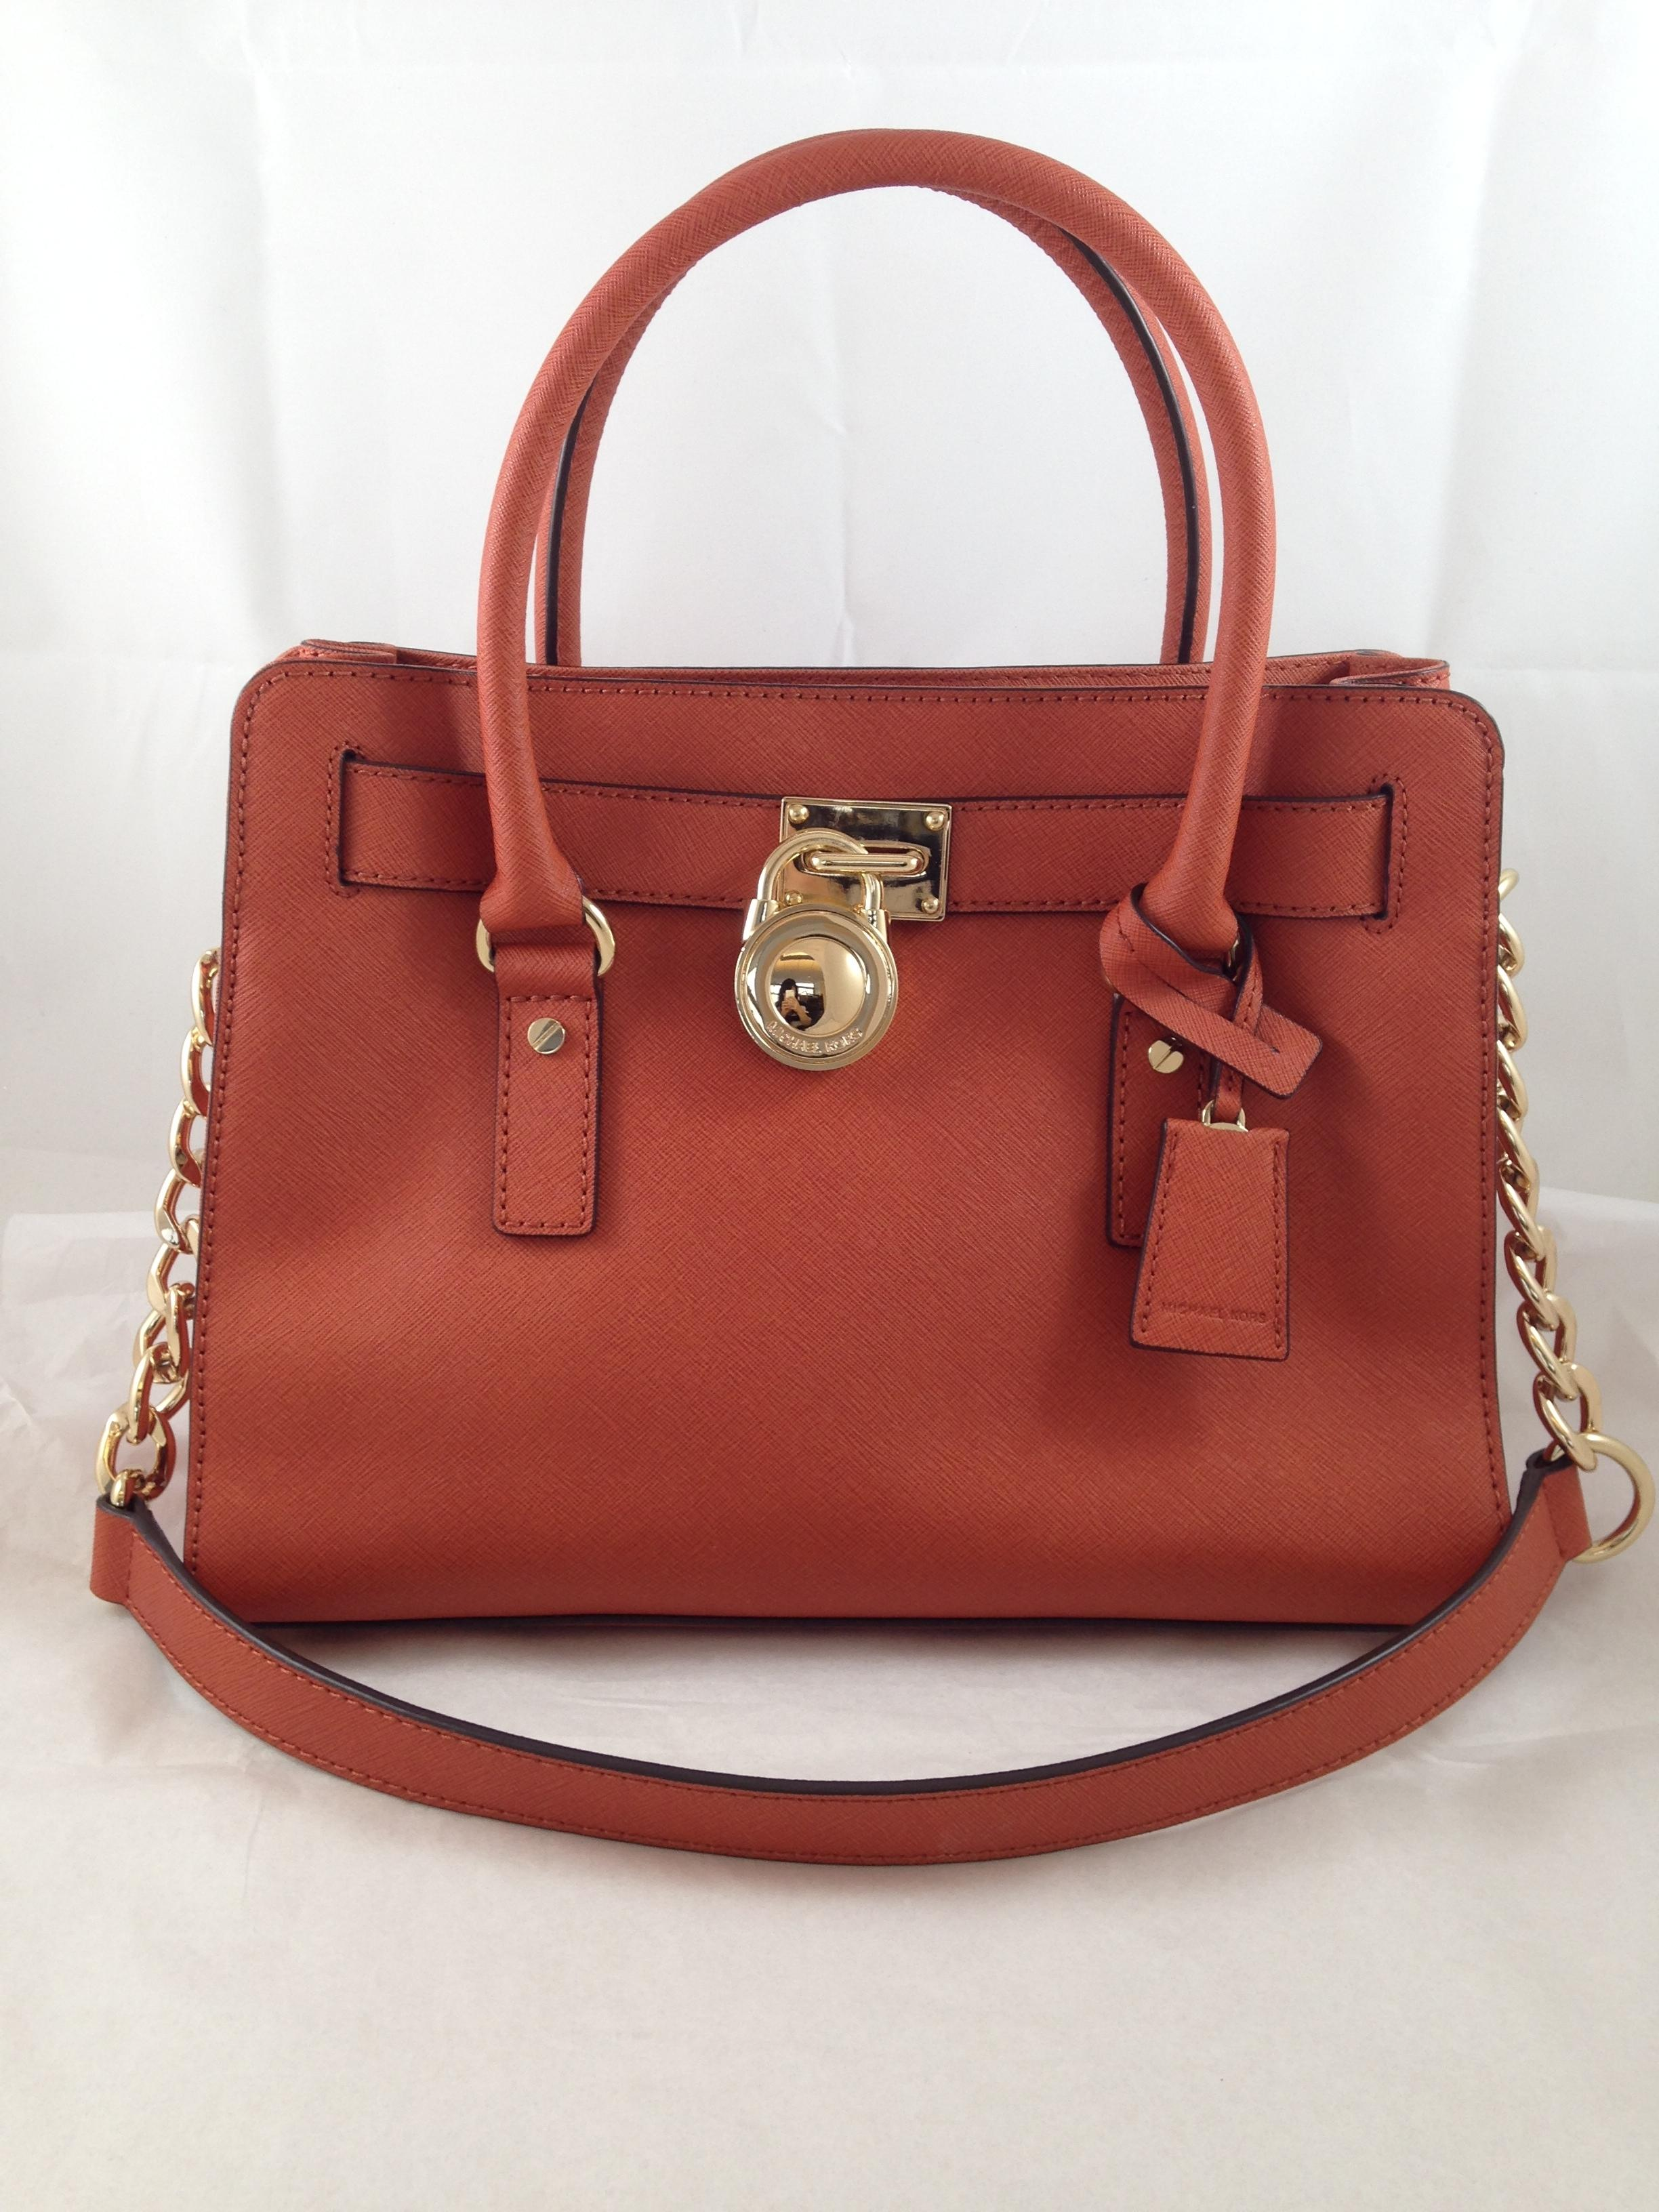 d658947db883 ... new style michael kors hamilton brown leather purse east west mk satchel  in honey redish rust